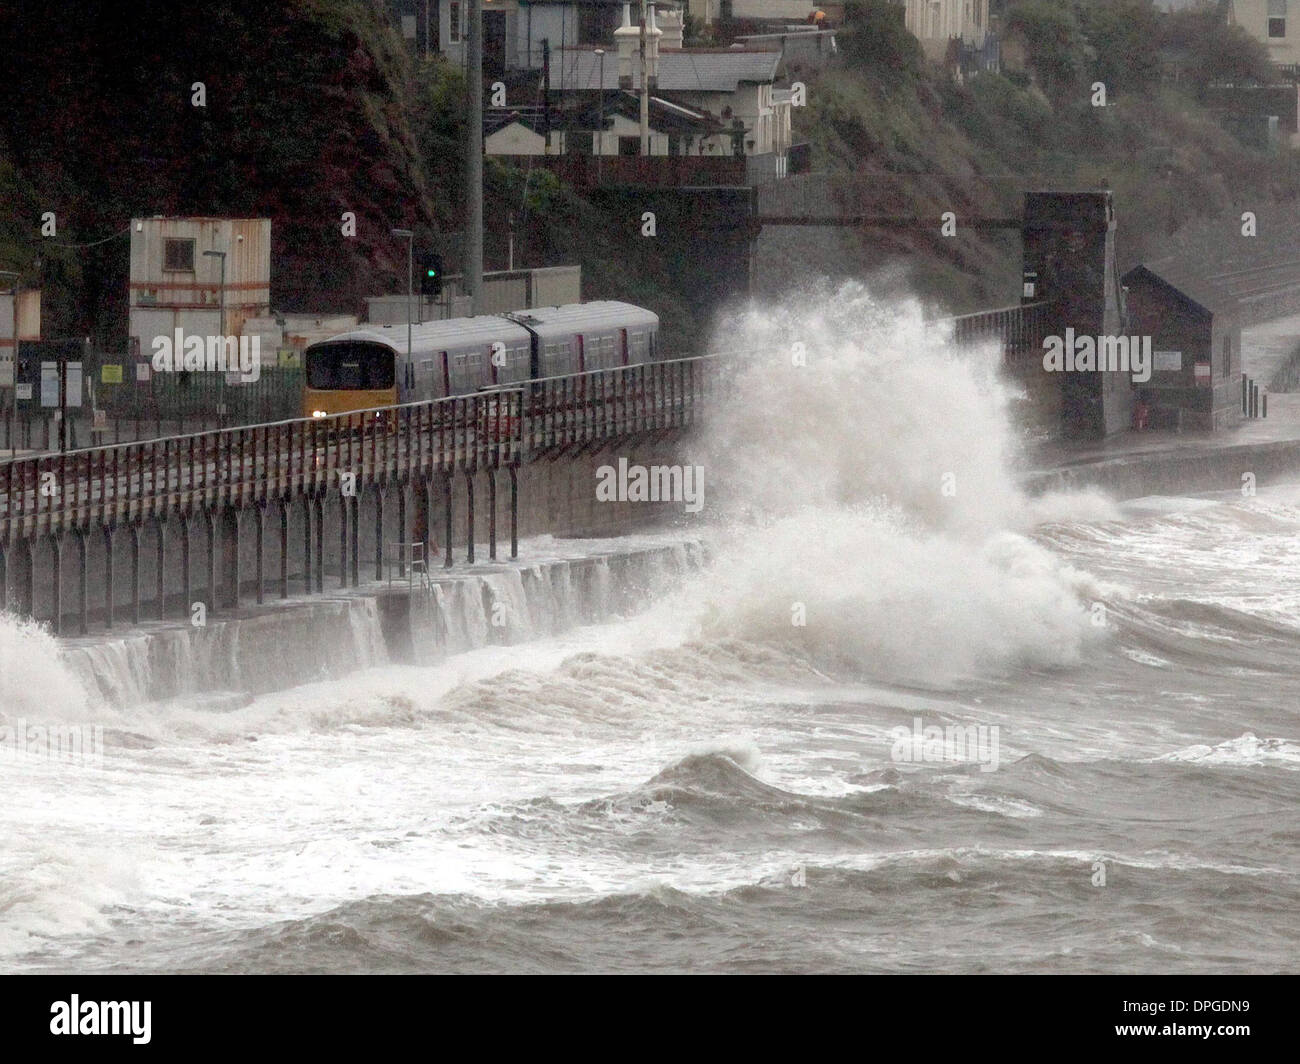 A train is battered by waves as it passes through the Dawlish train station, Devon - Stock Image